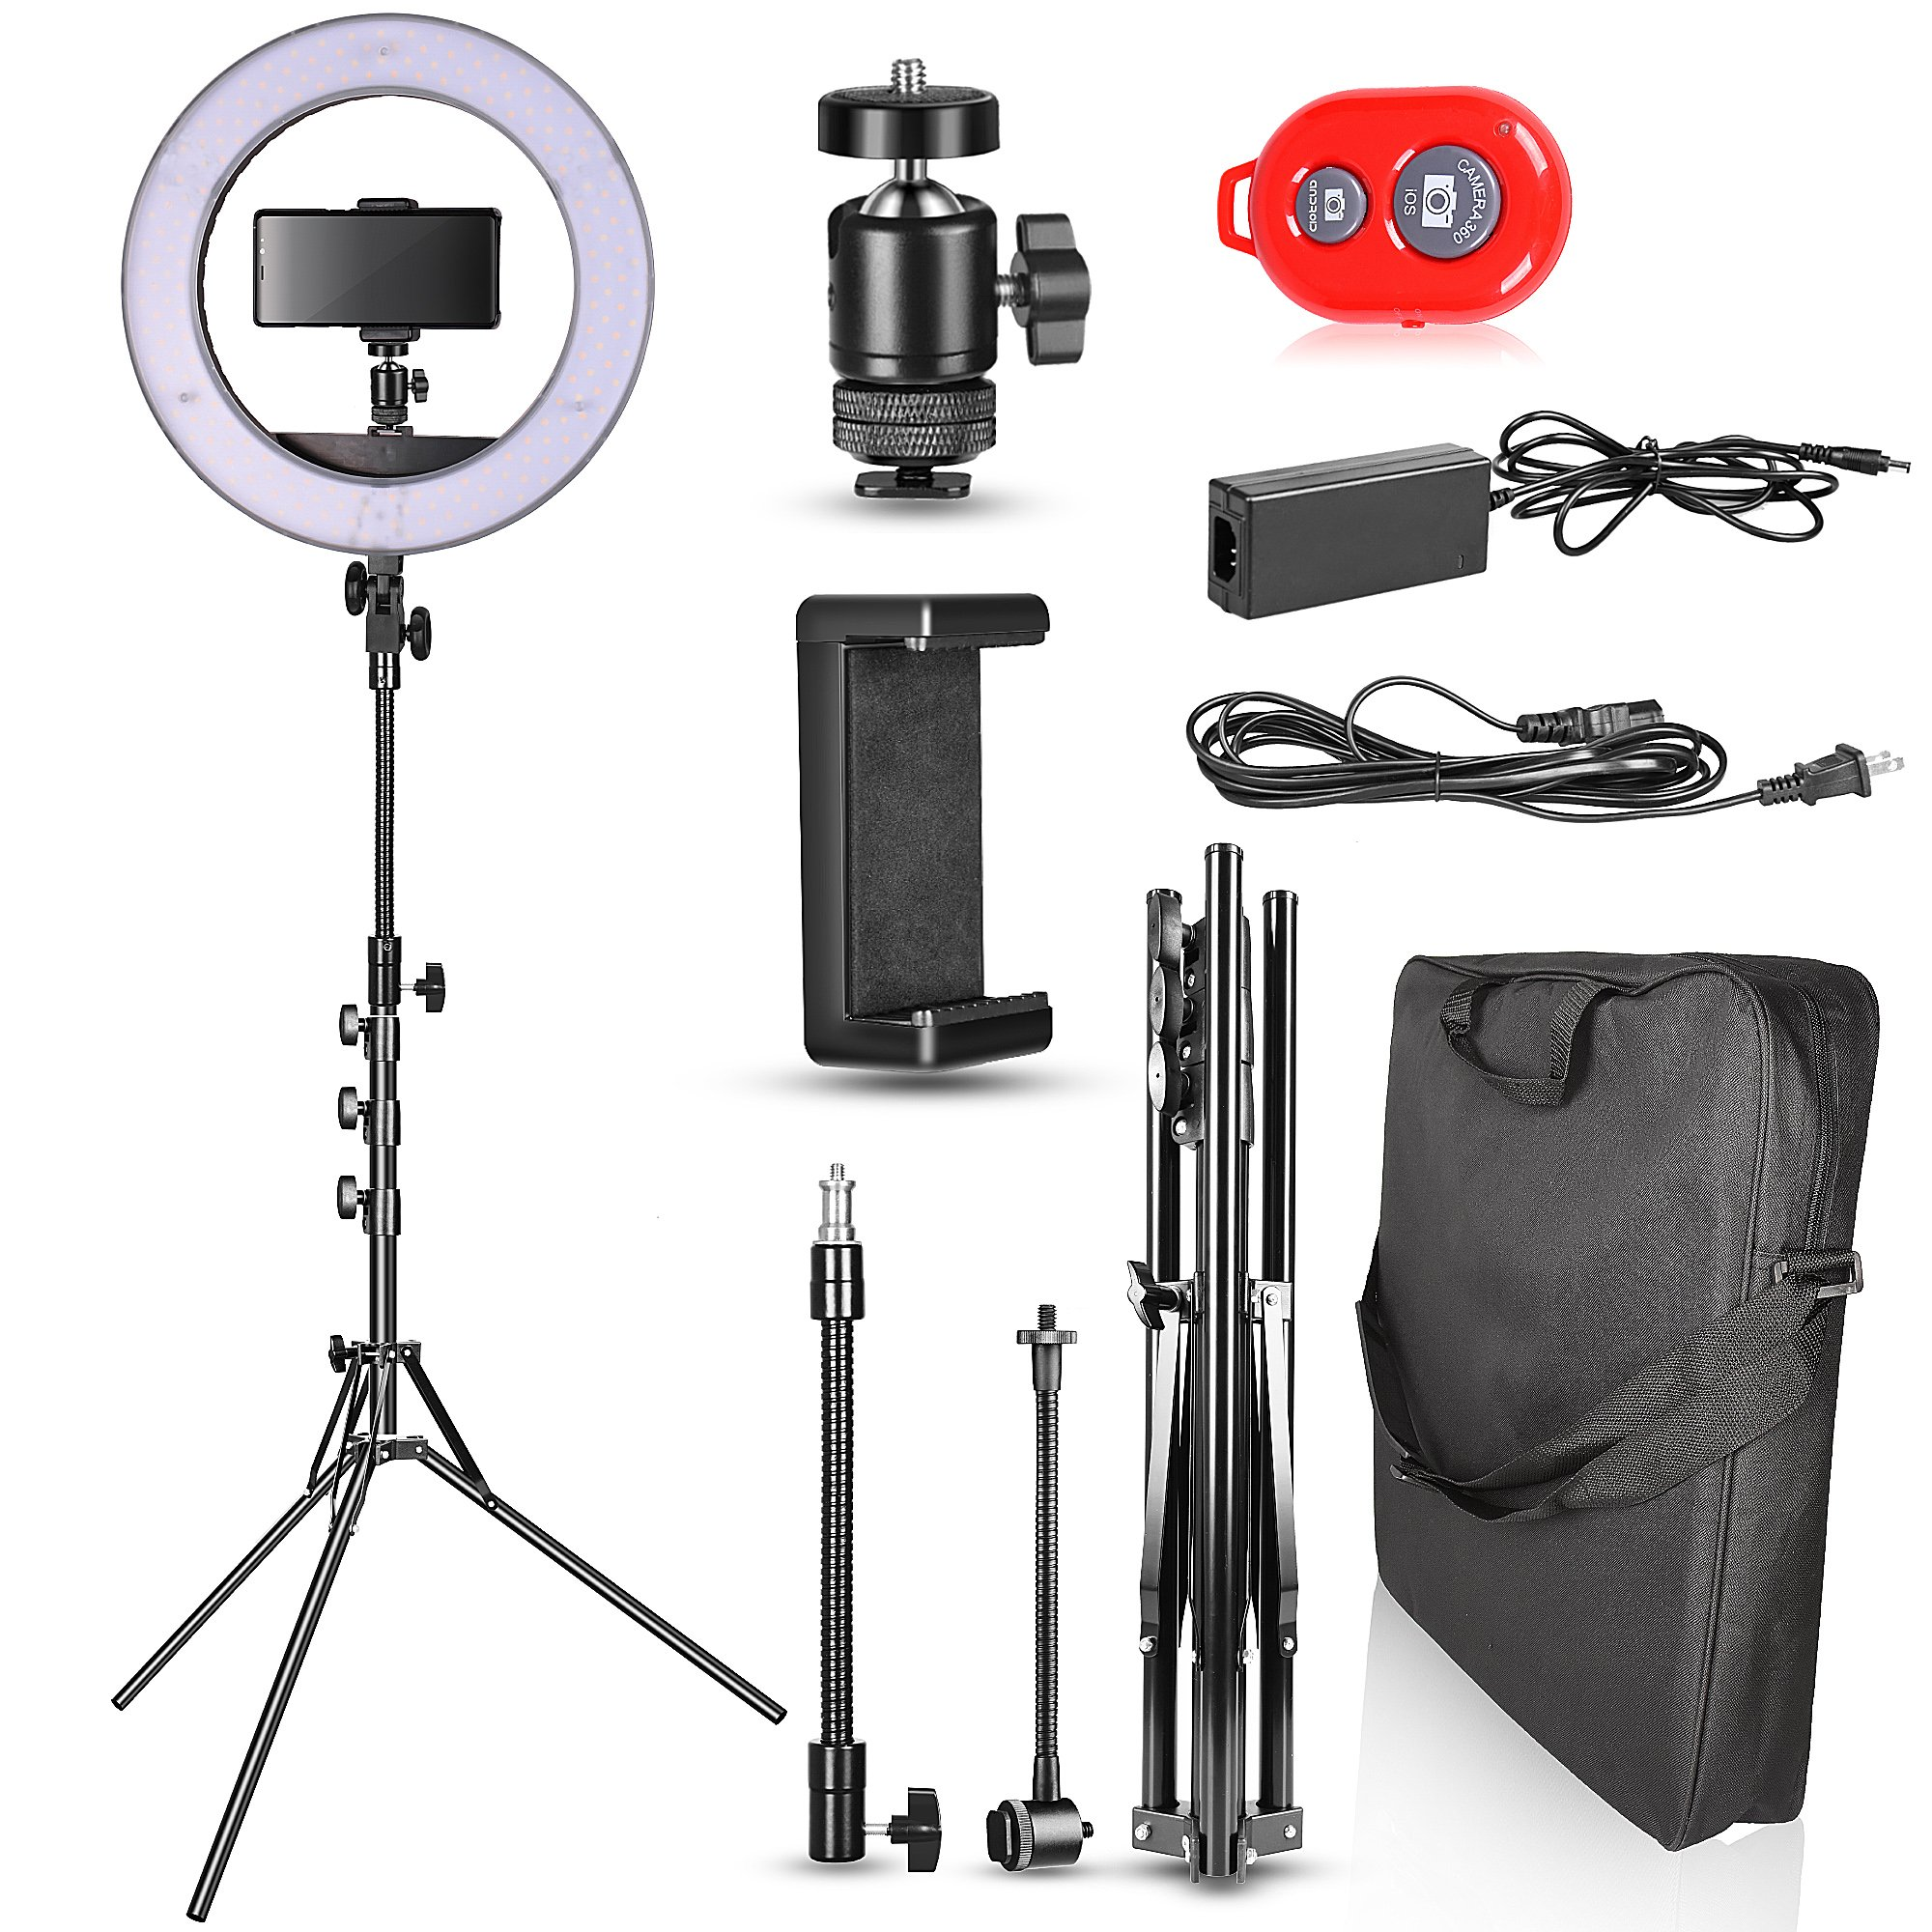 Emart 14 inch Bi-Color LED Ring Light Photography with Stand - Ultra Thin Innovation, 40W Dimmable & Color Temperature Adjustable Circle Makeup Lighting Kit for Shooting YouTube Video